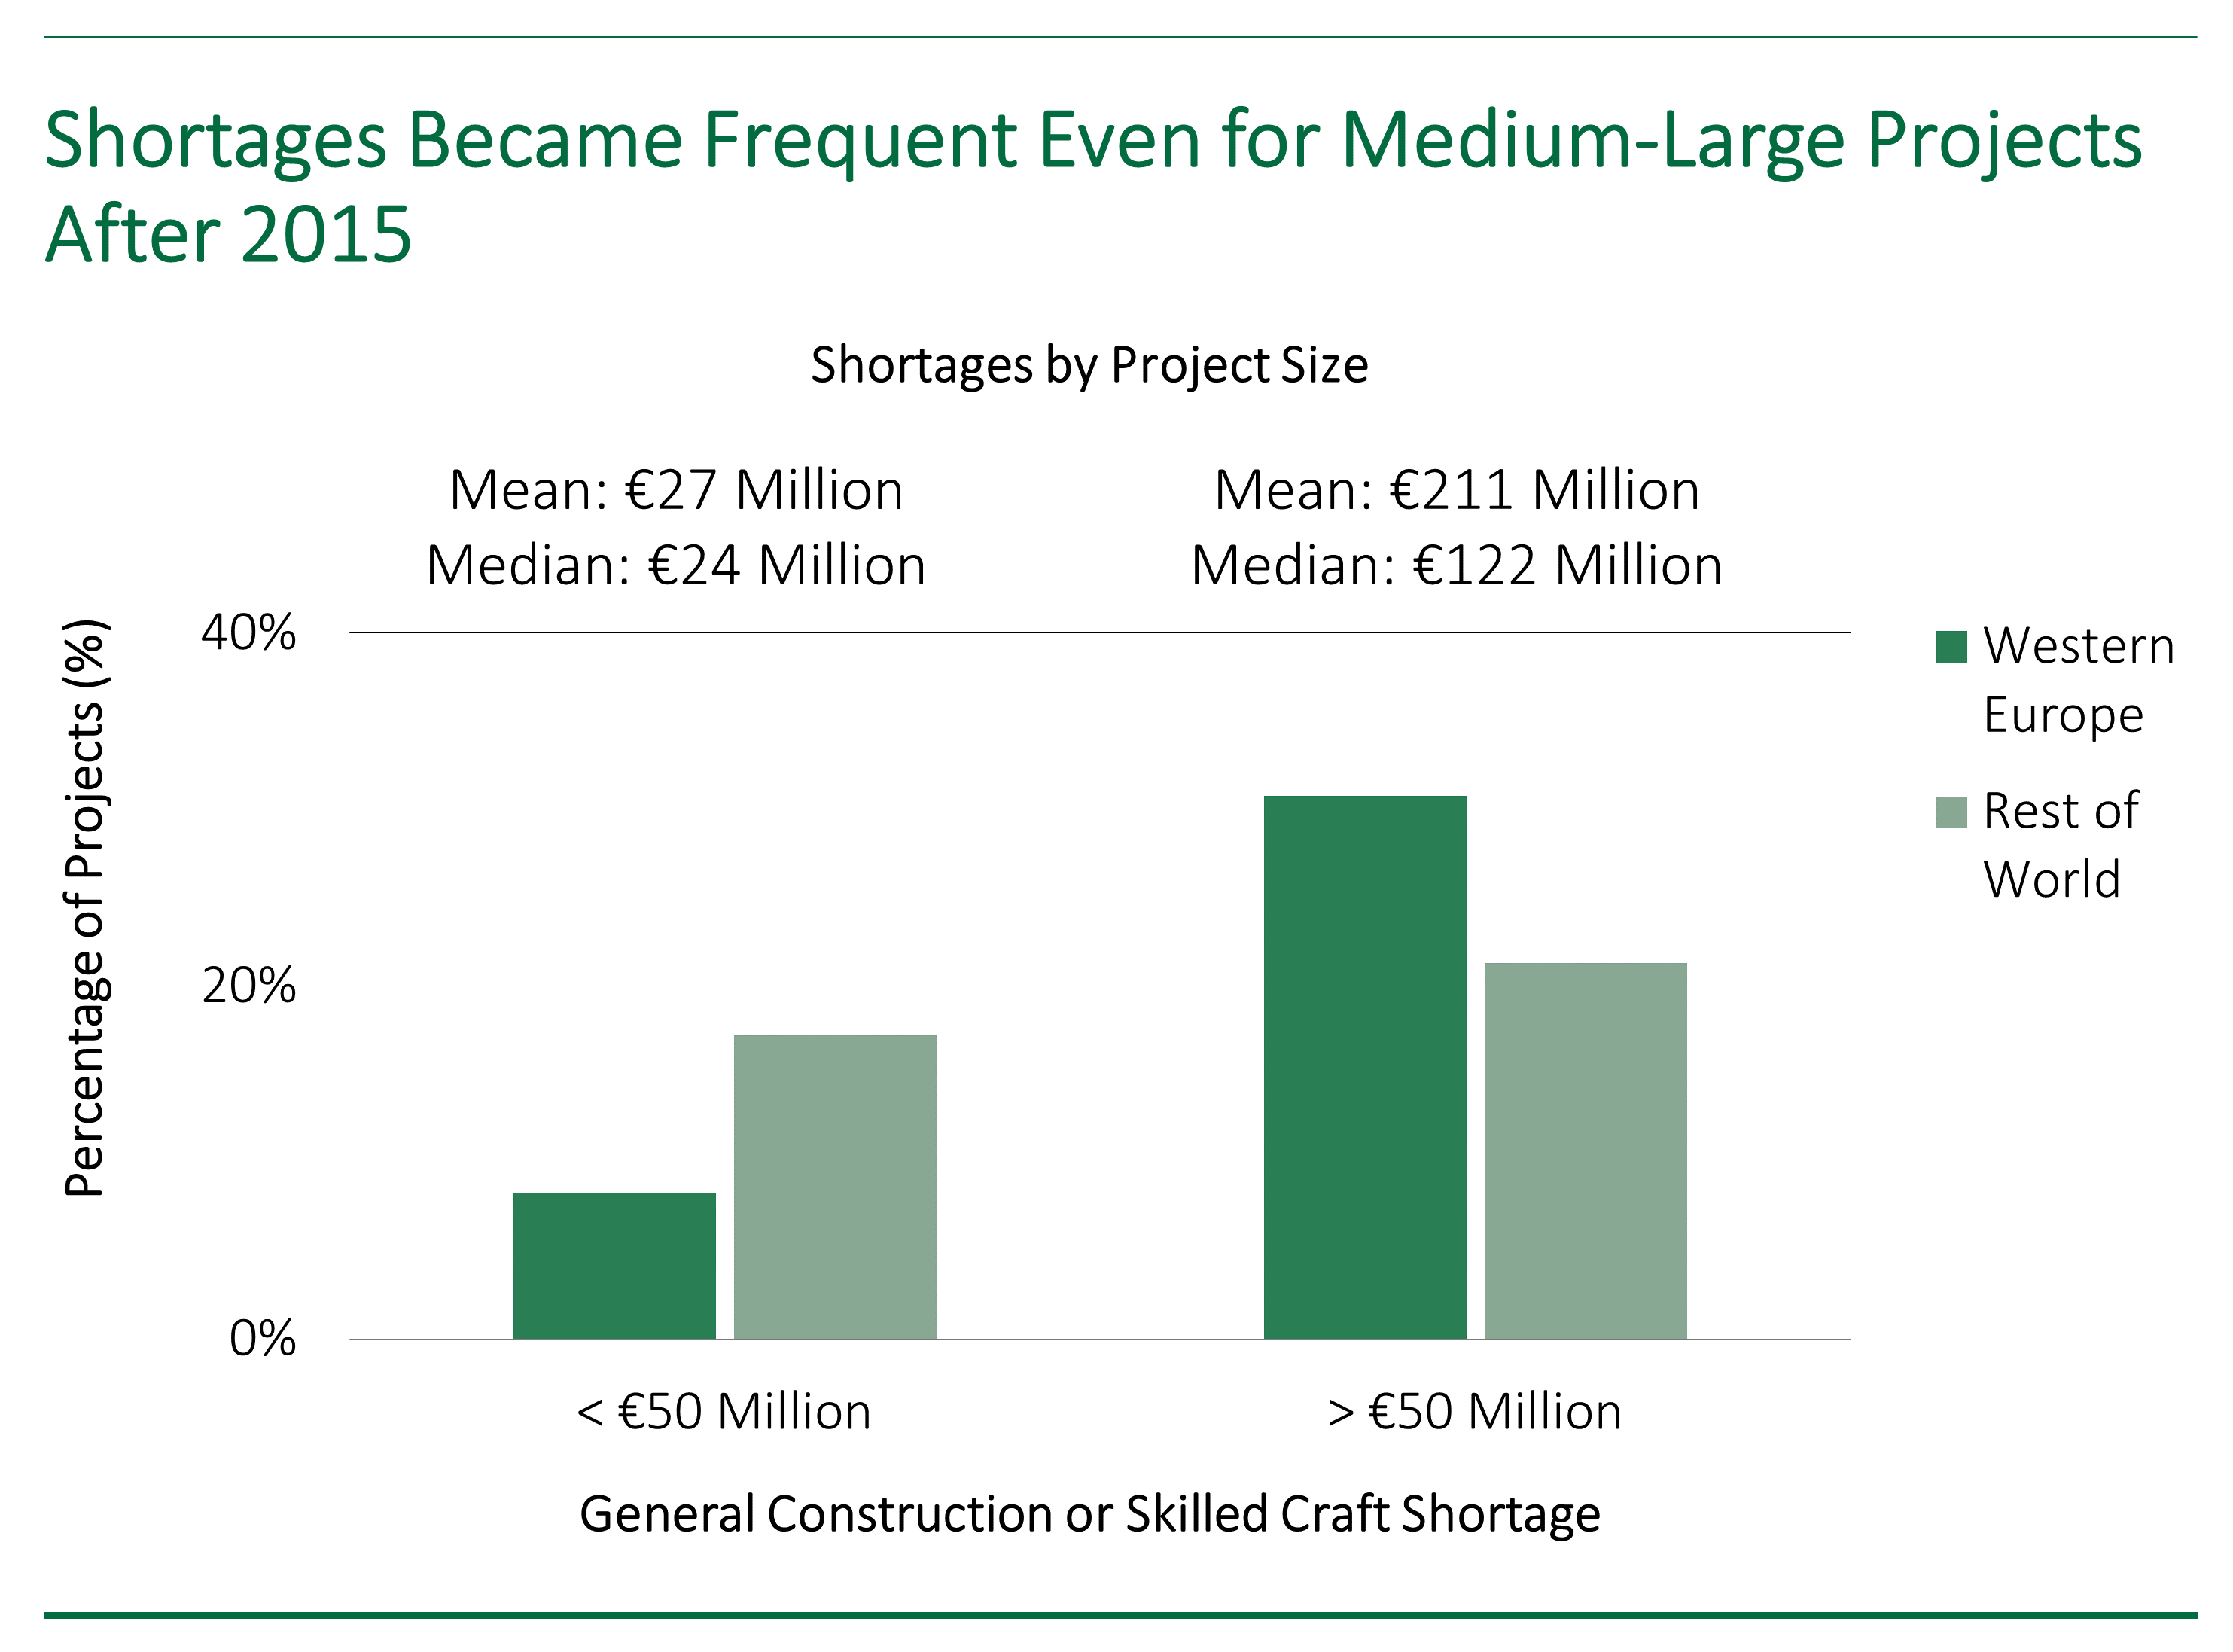 Bar chart showing that the frequency of construction shortages in Western Europe increased for medium to large capital projects after 2015.